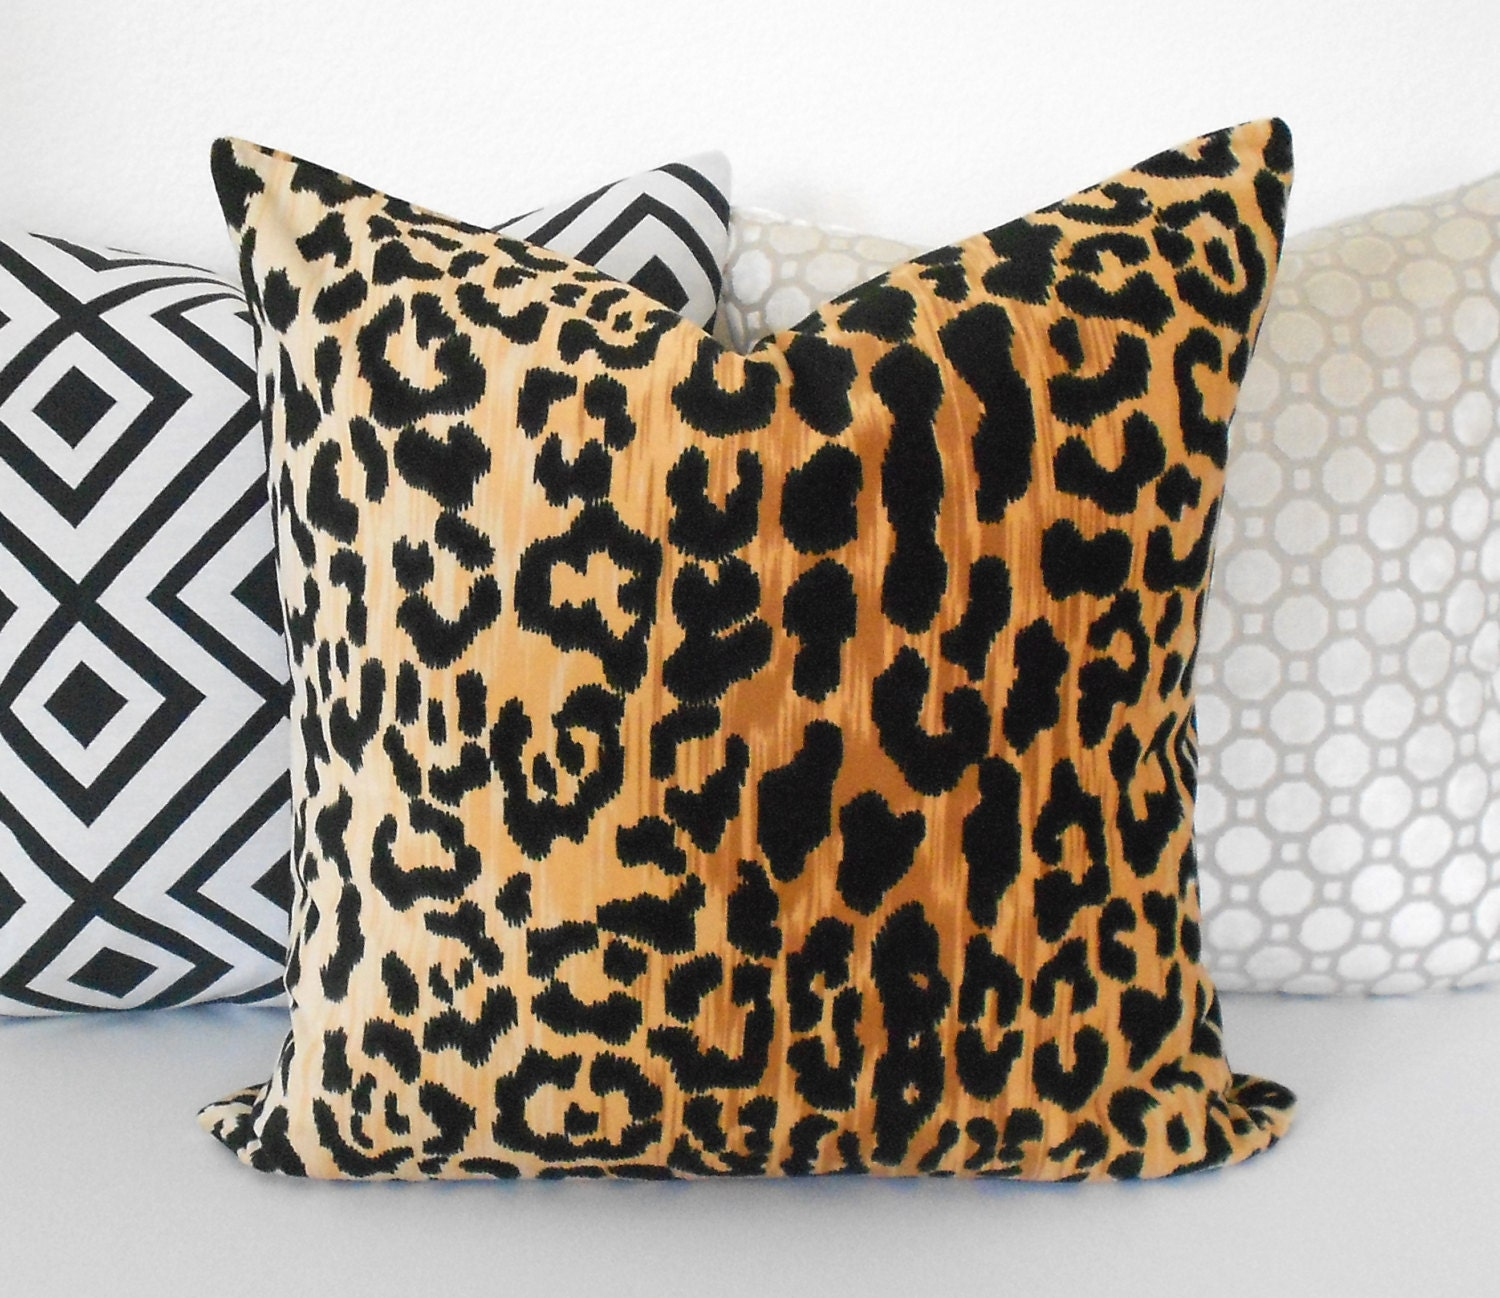 Leopard Velvet Decorative Pillow Cover Animal Print Pillow